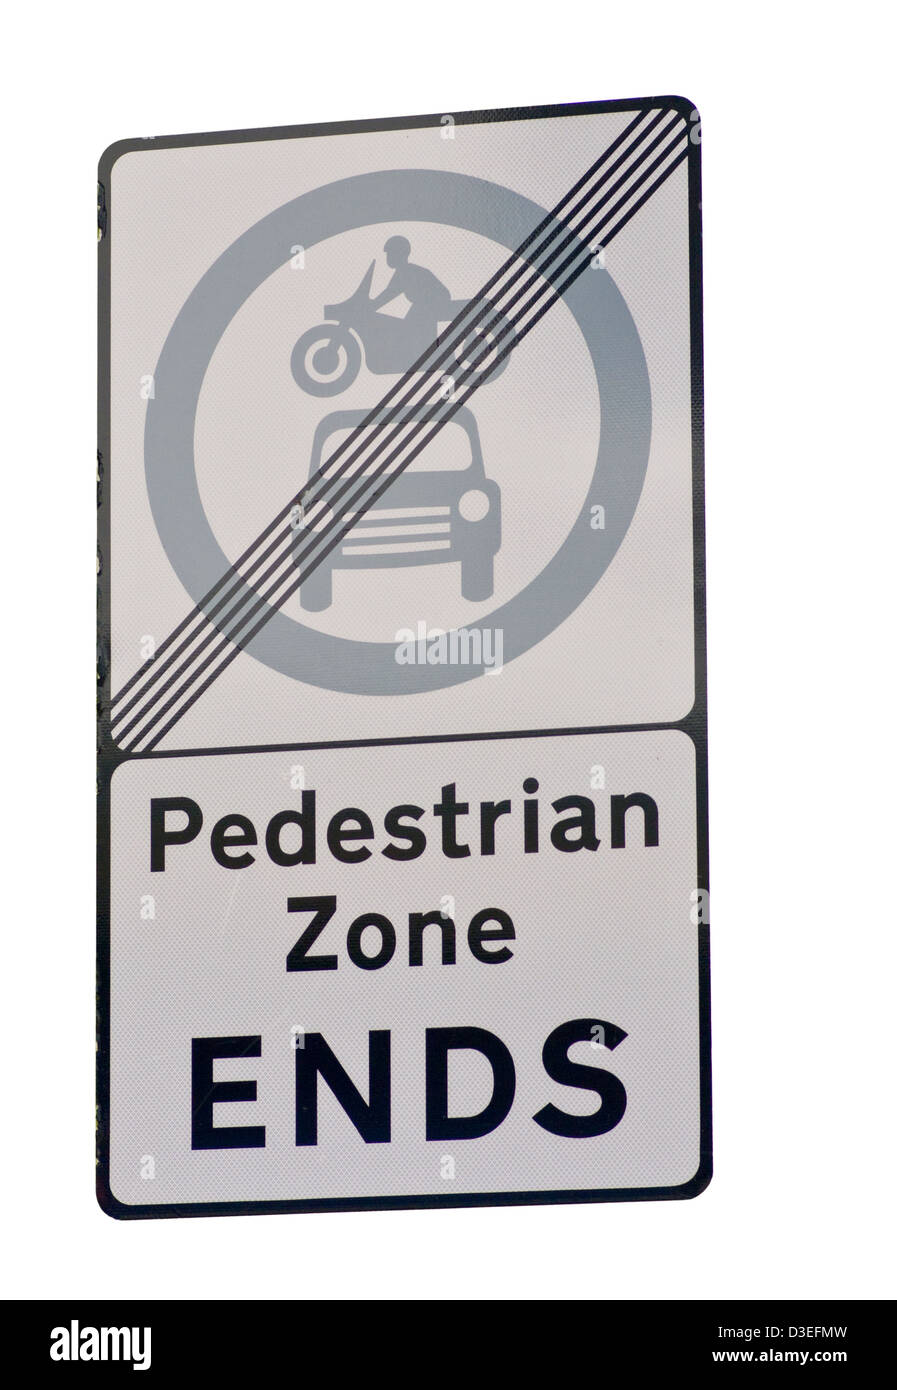 Pedestrian Zone Ends Road Sign England - Stock Image